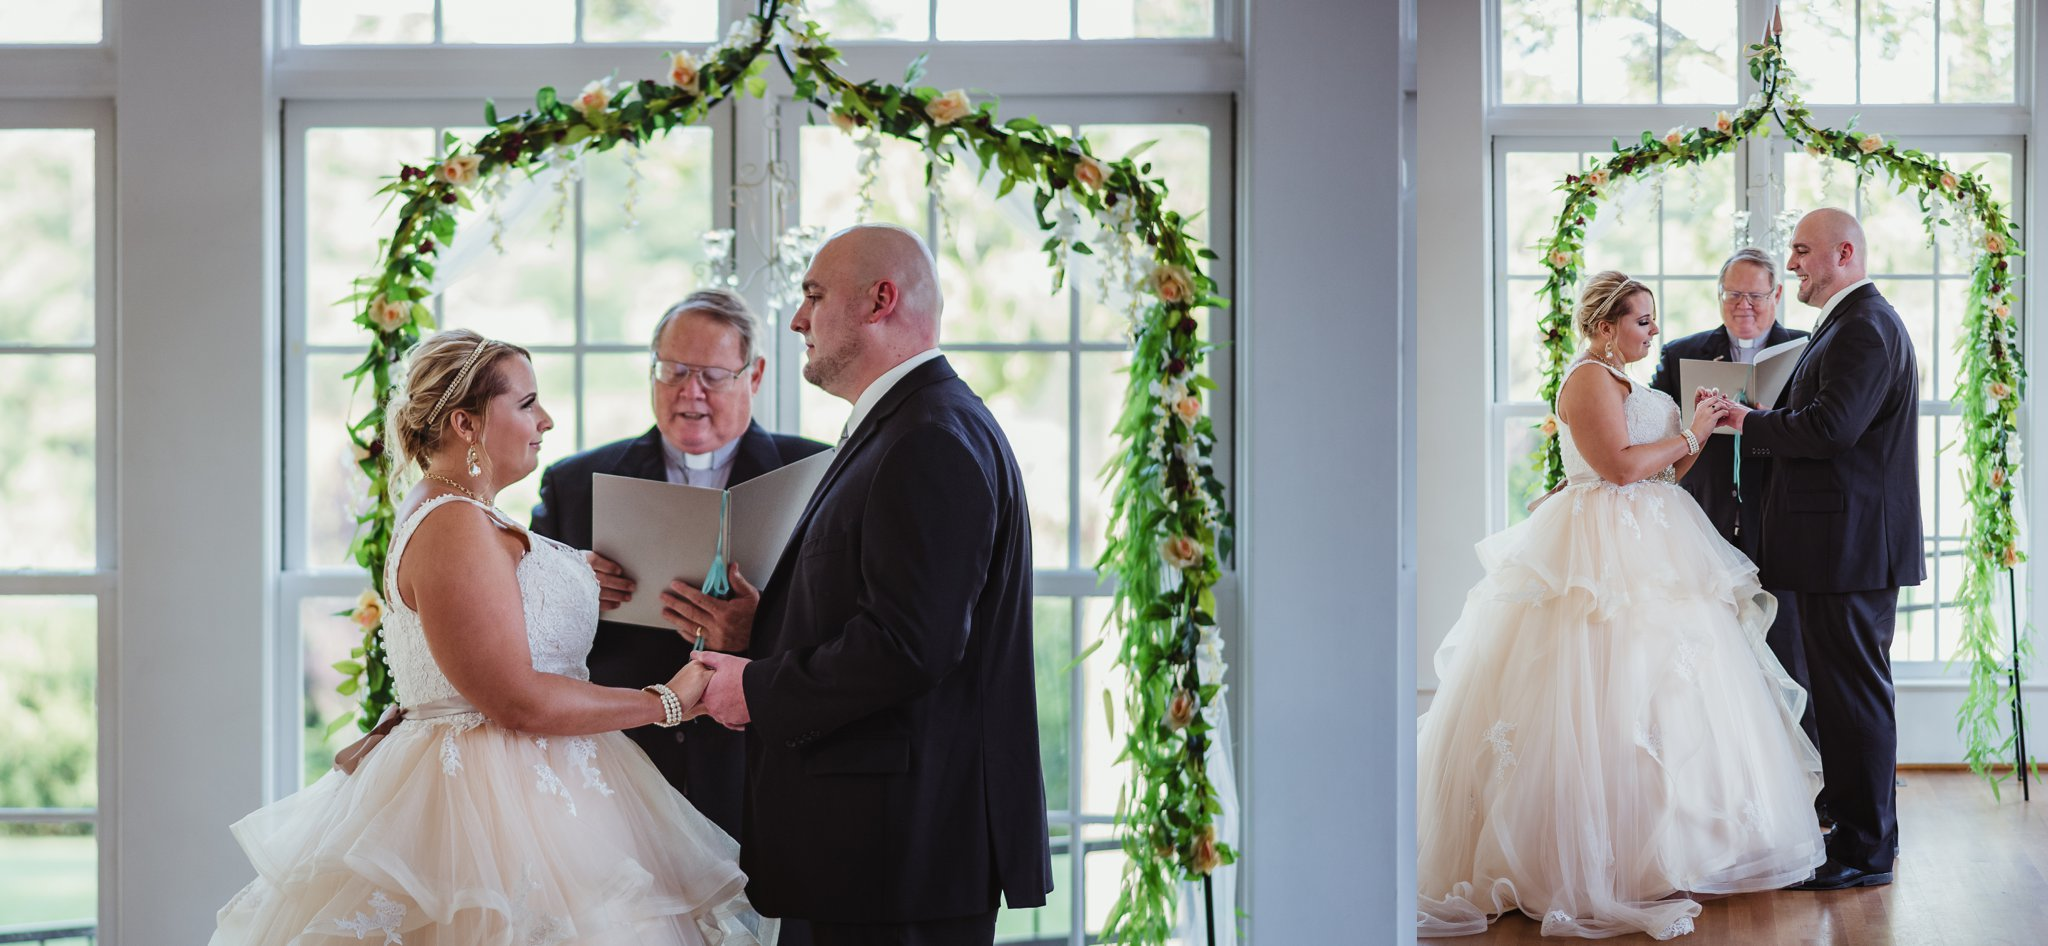 The bride and groom exchange vows and rings at their wedding at the Rand-Bryan House in Raleigh, photos by Rose Trail Images.